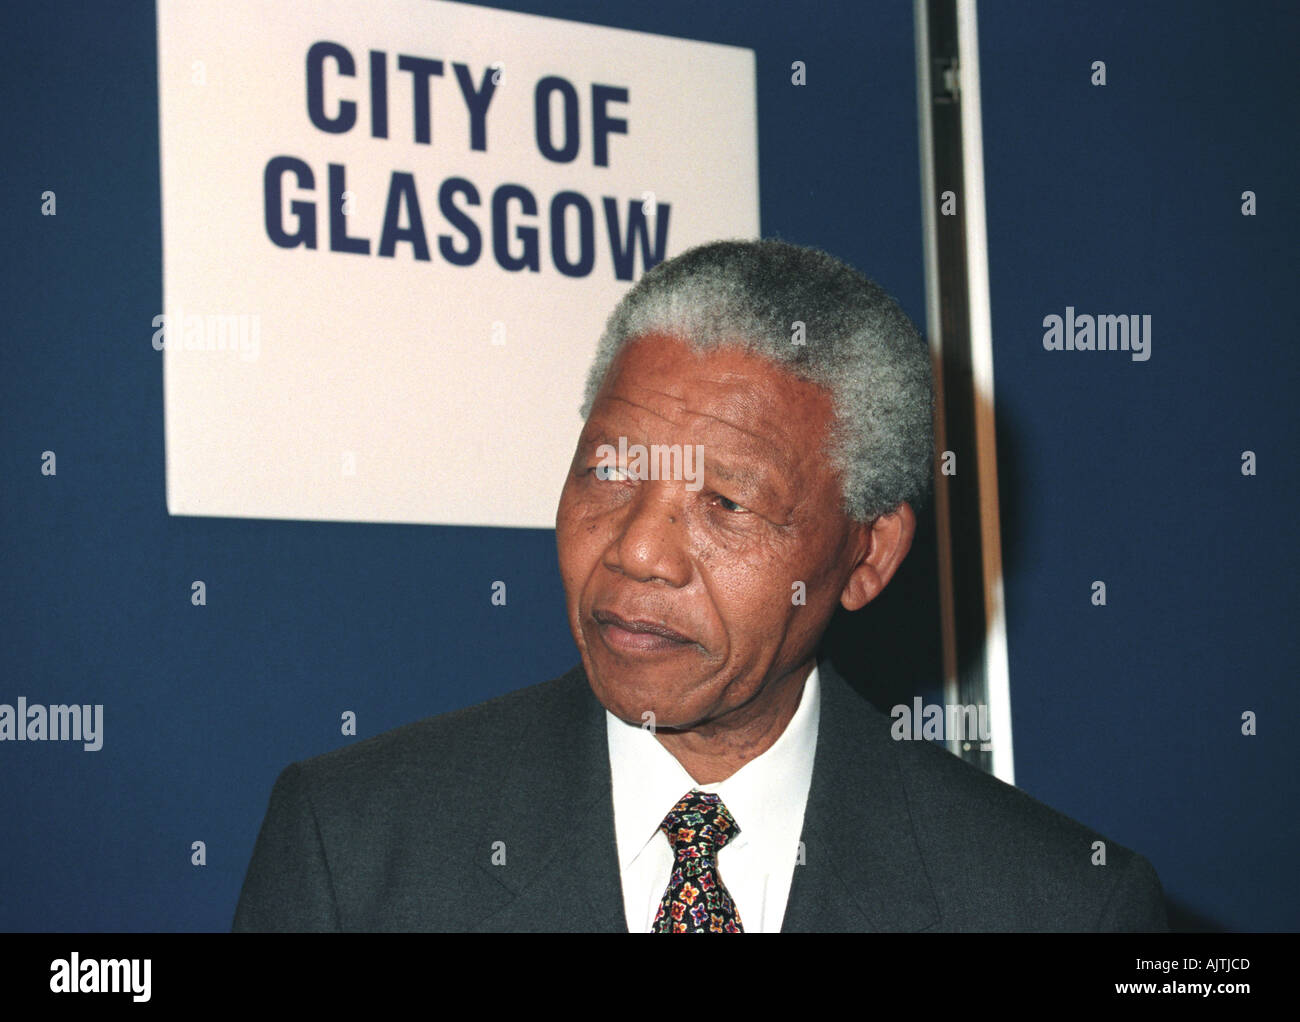 Nelson Mandela in Glasgow receiving the freedom of the city - Stock Image